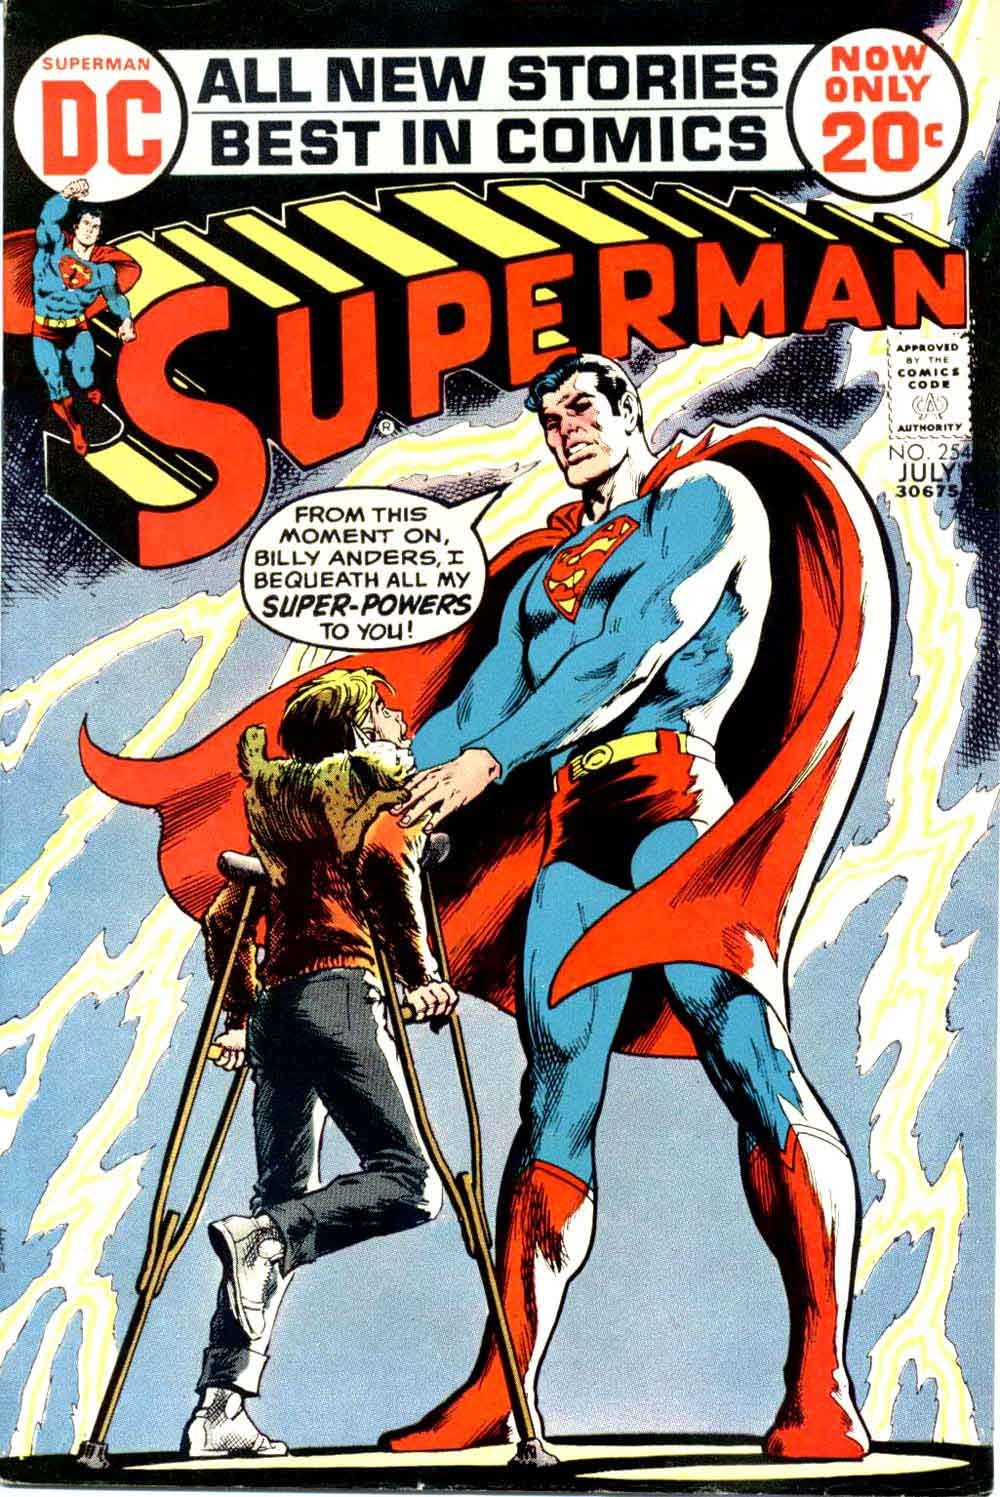 Superman v1 #254 dc comic book cover art by Nick Cardy